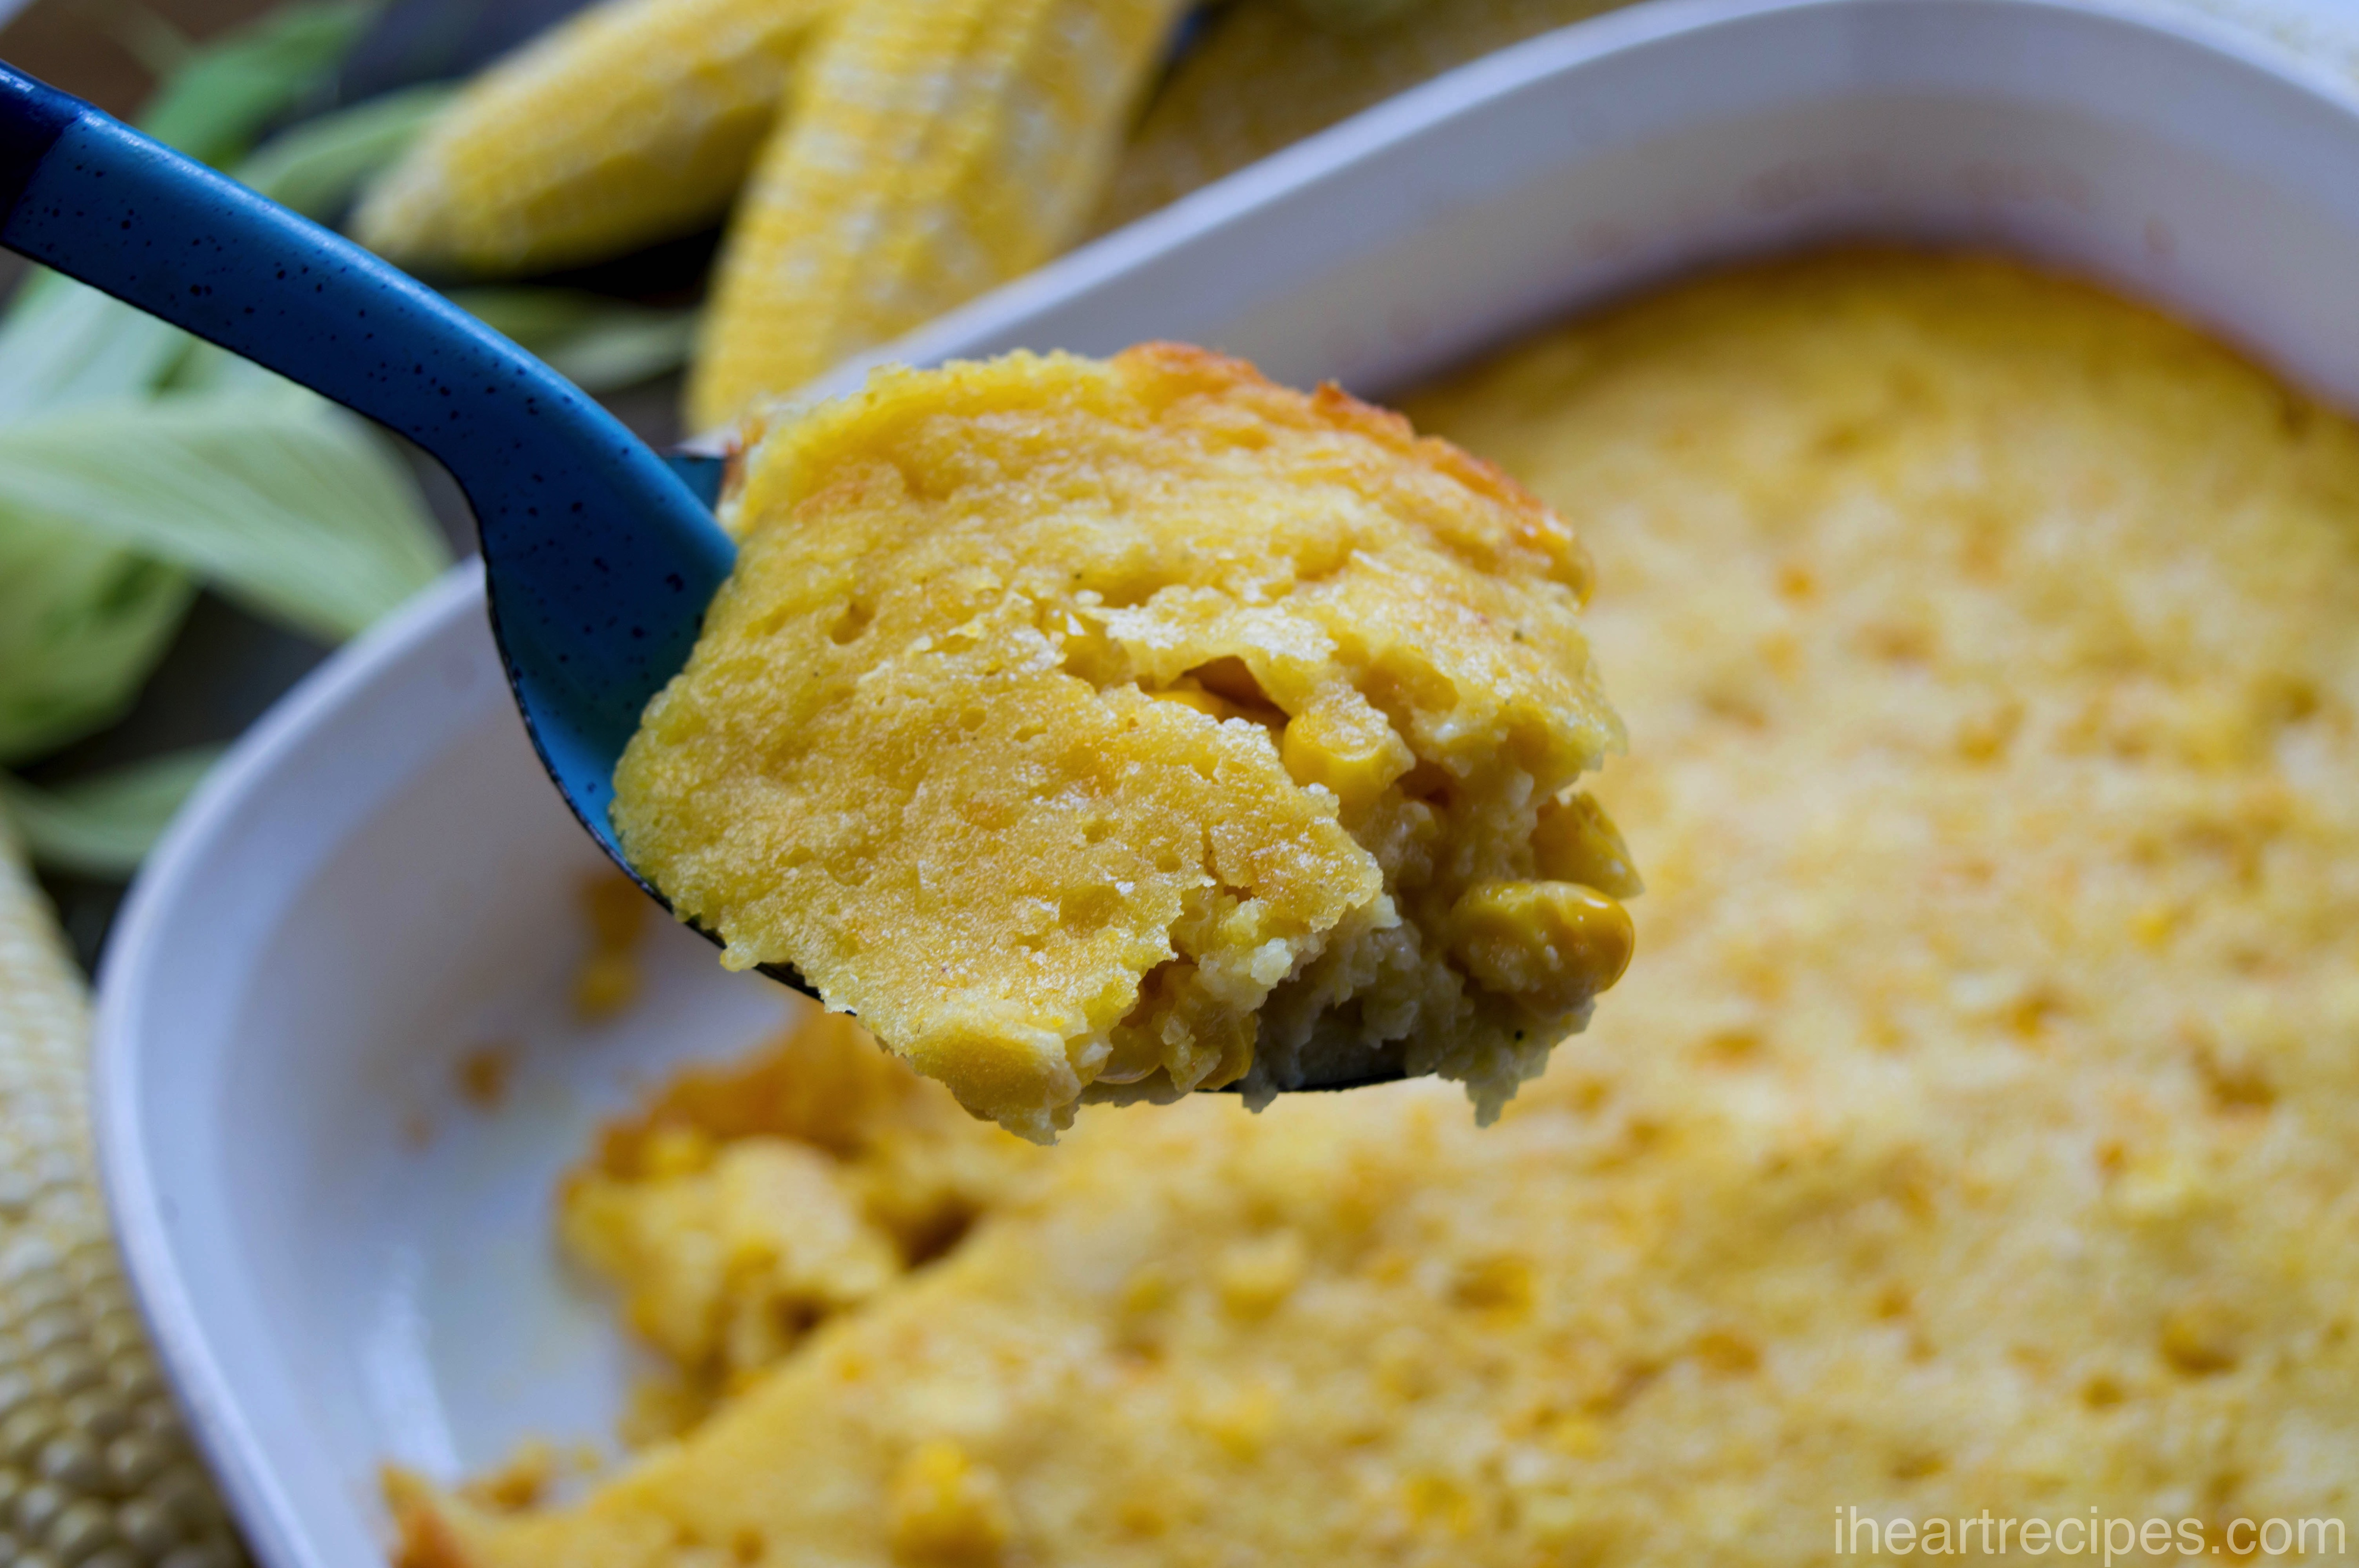 This corn pudding casserole is super creamy and silky in texture.